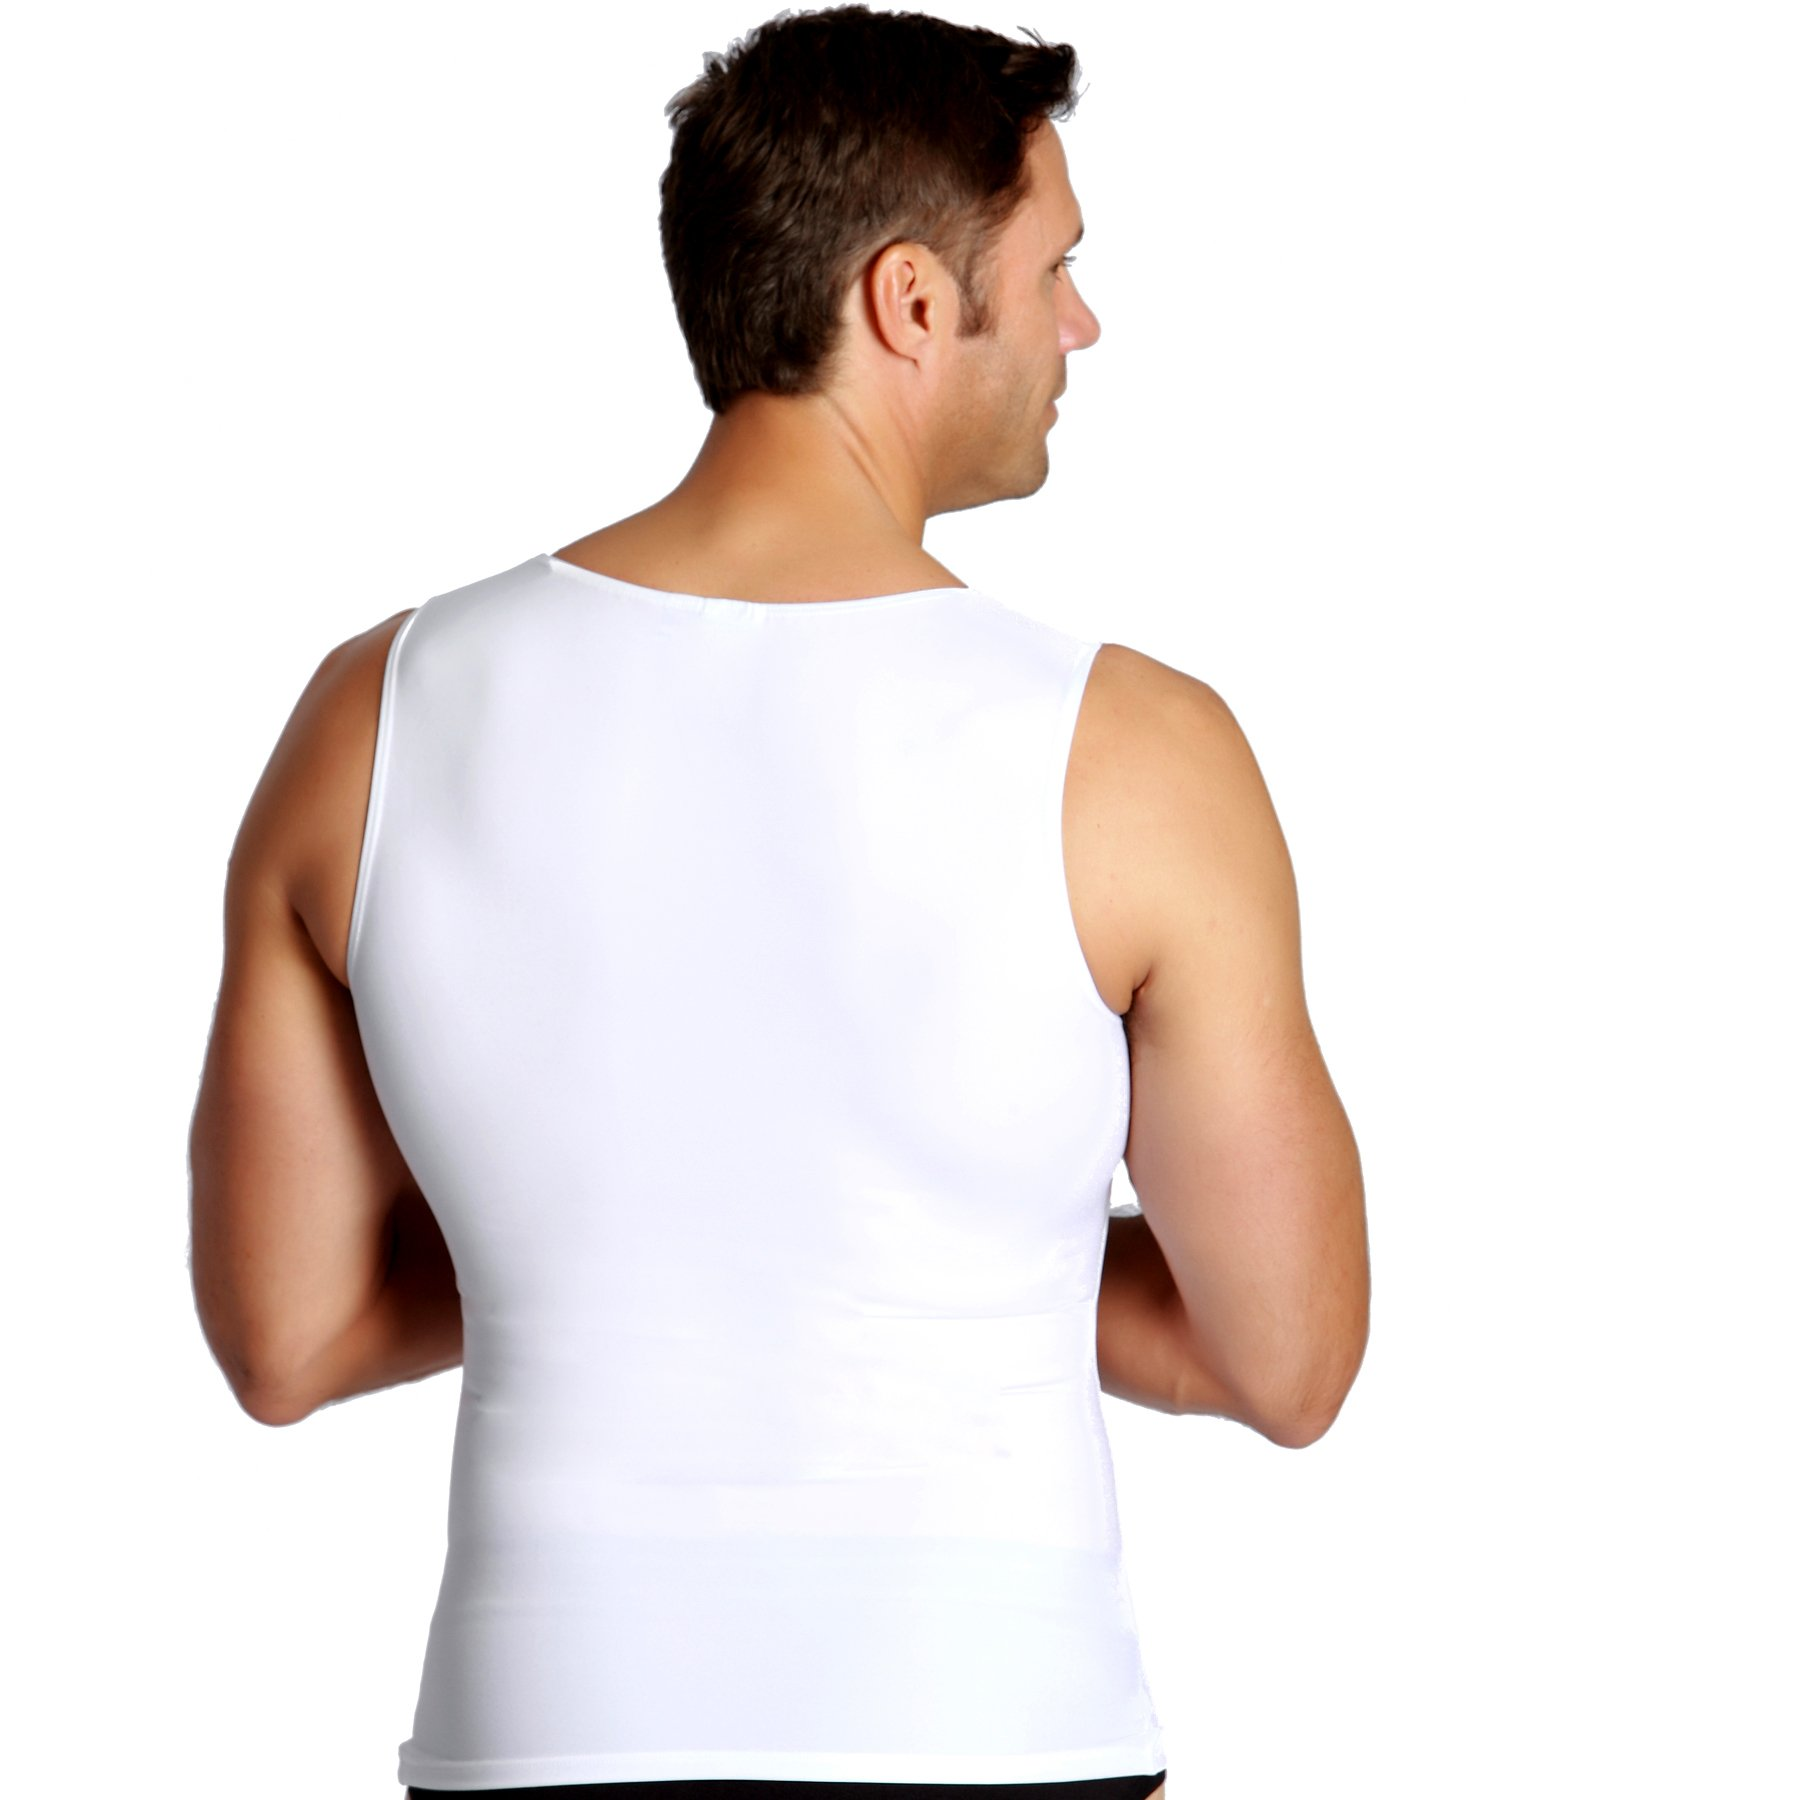 Insta Slim 3 Pack Muscle Tank, Look Up to 5 Inches Slimmer Instantly, White, Medium, The Magic is in The Fabric! by Insta Slim (Image #3)